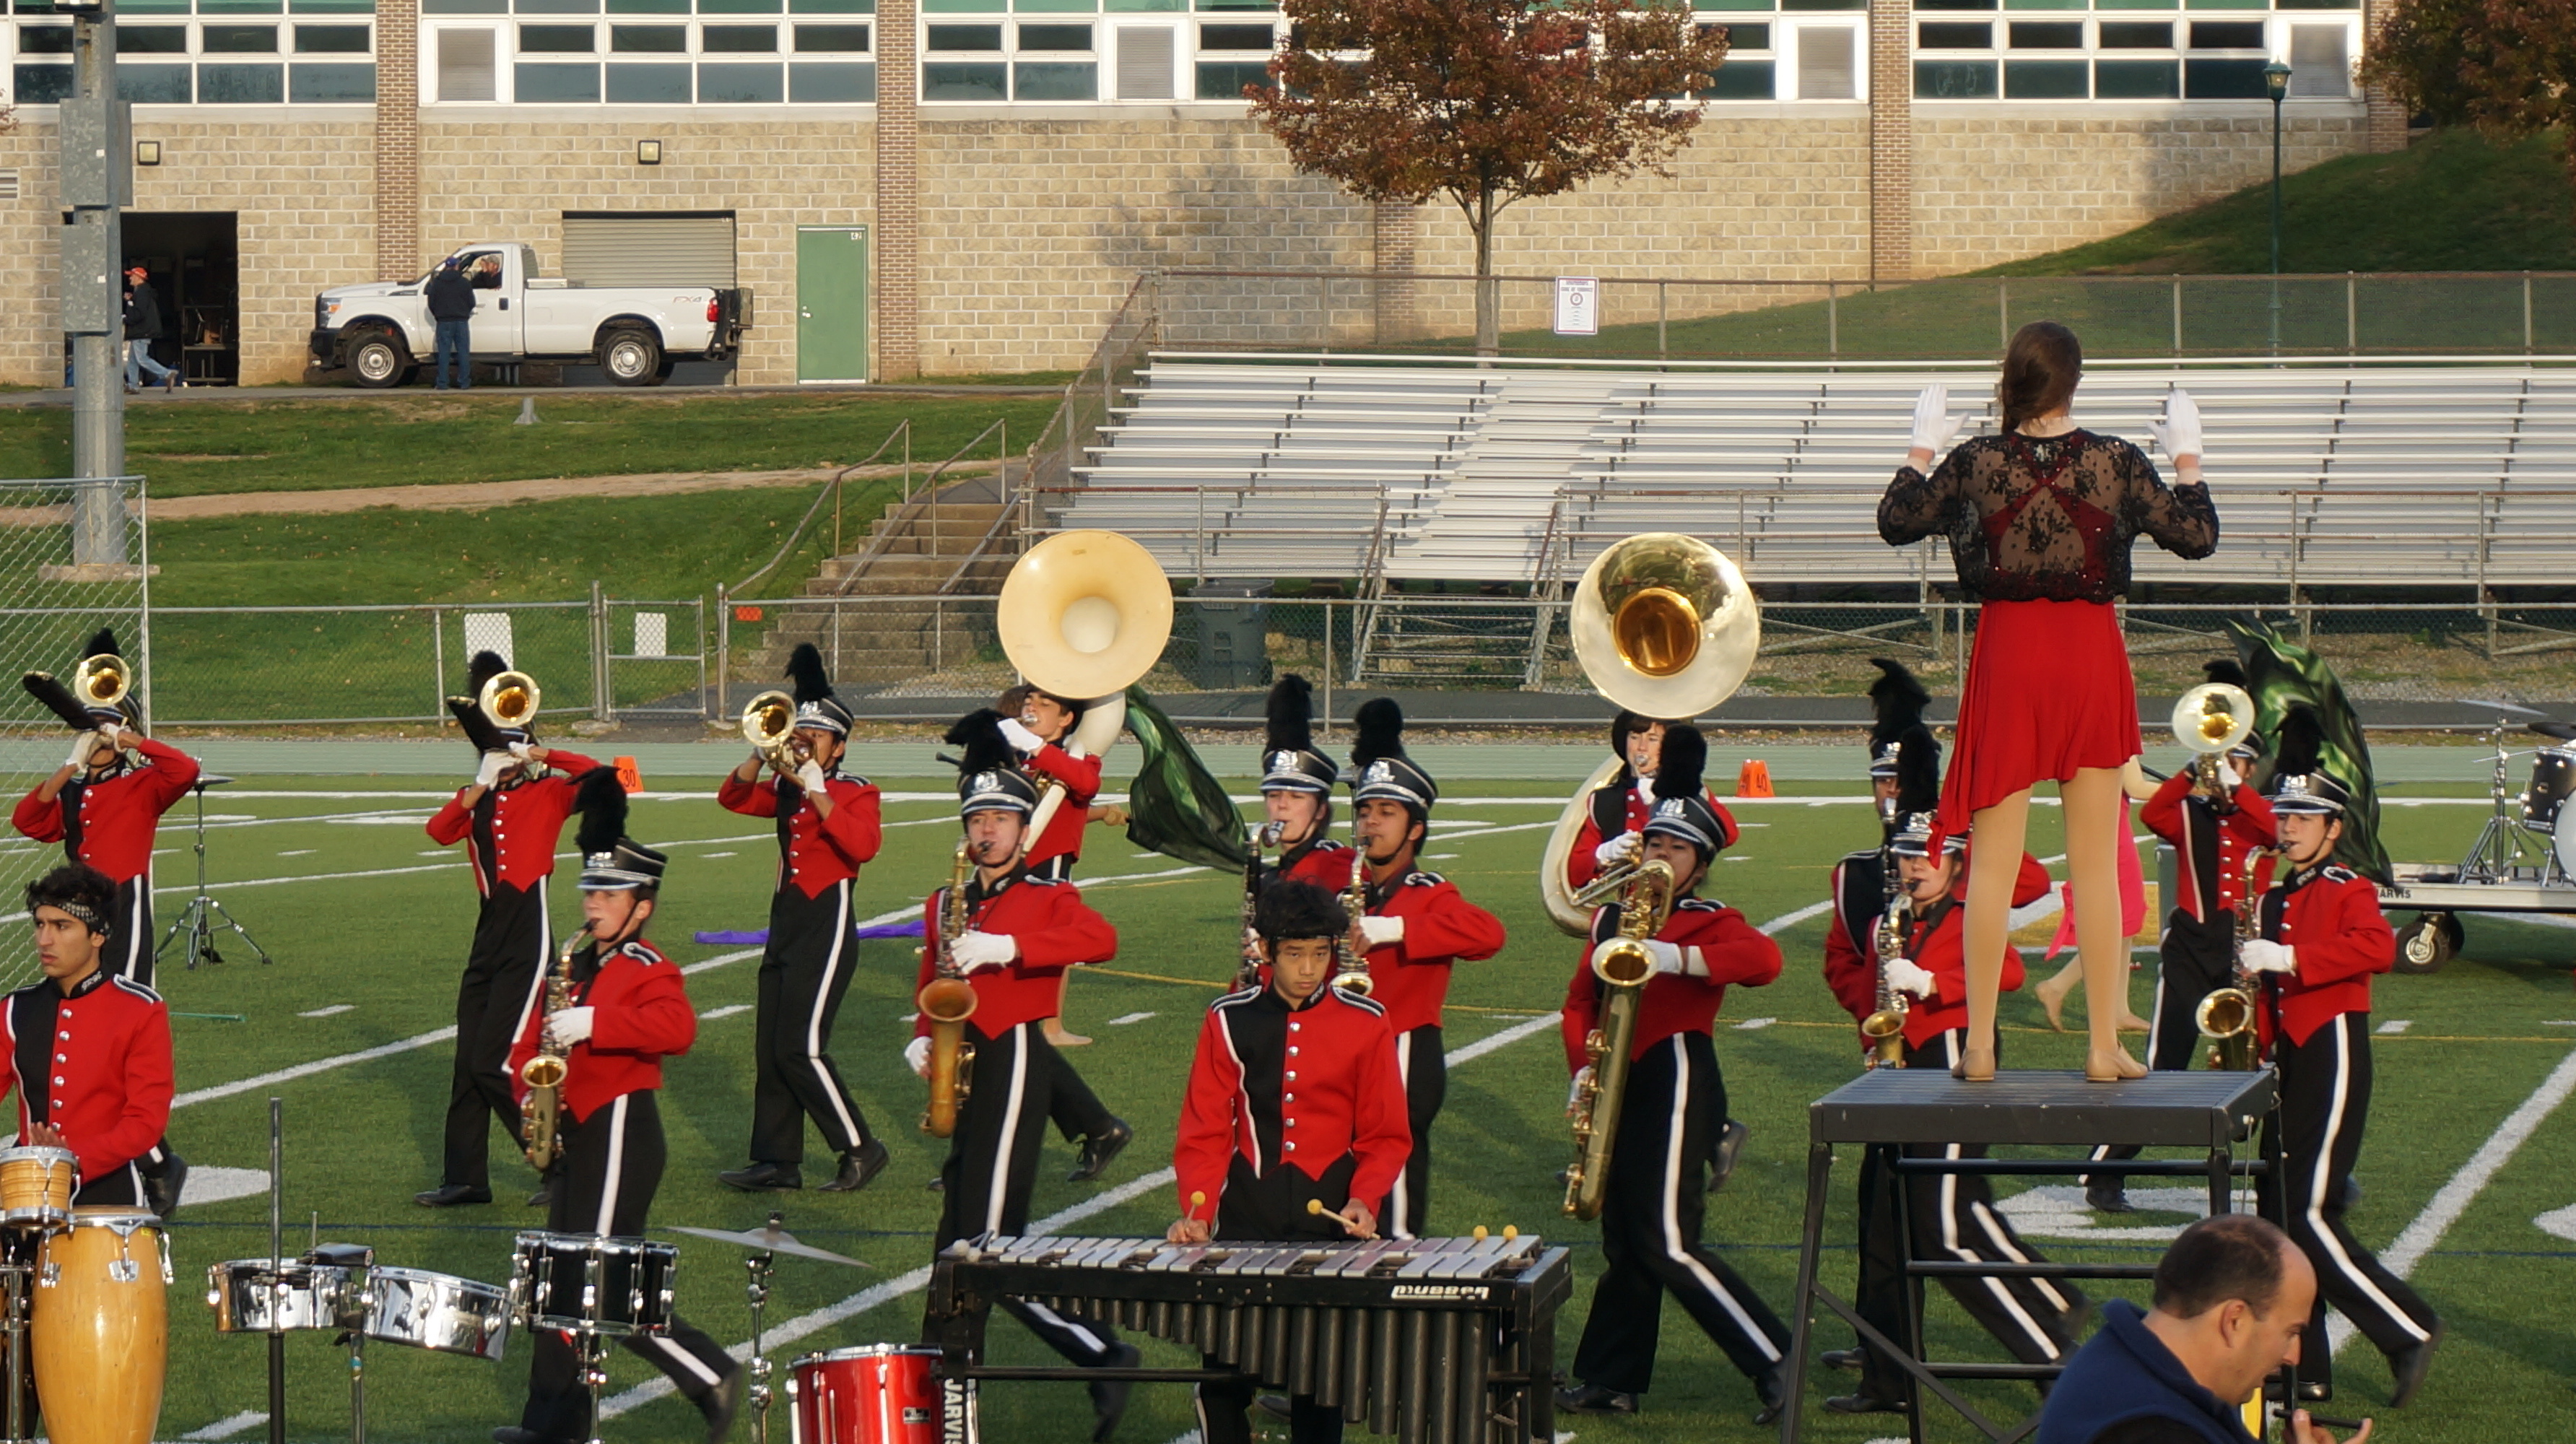 a5a02dc244064359b32a_band_competition_005.JPG